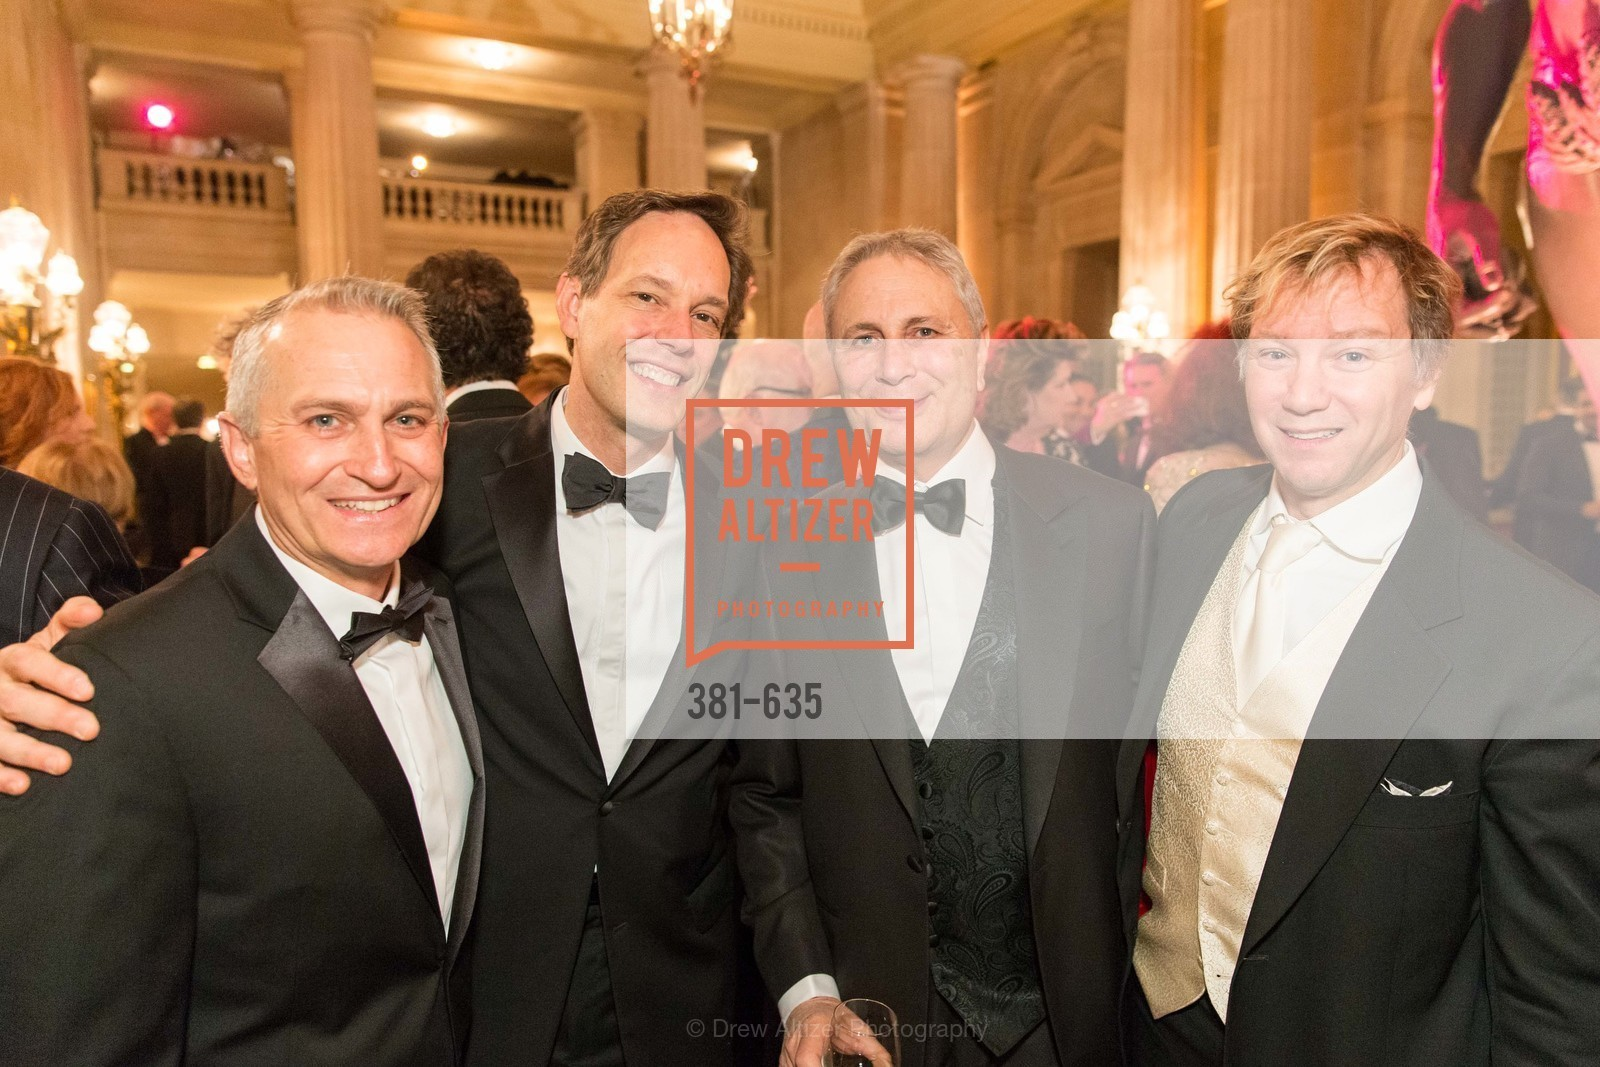 Curt Brannom, Jake Heggie, John Corigliano, Mark Adamo, An Evening on the Stage Honoring Renaissance Man Gordon Getty, War Memorial Opera House. 301 Van Ness Ave, December 7th, 2015,Drew Altizer, Drew Altizer Photography, full-service agency, private events, San Francisco photographer, photographer california